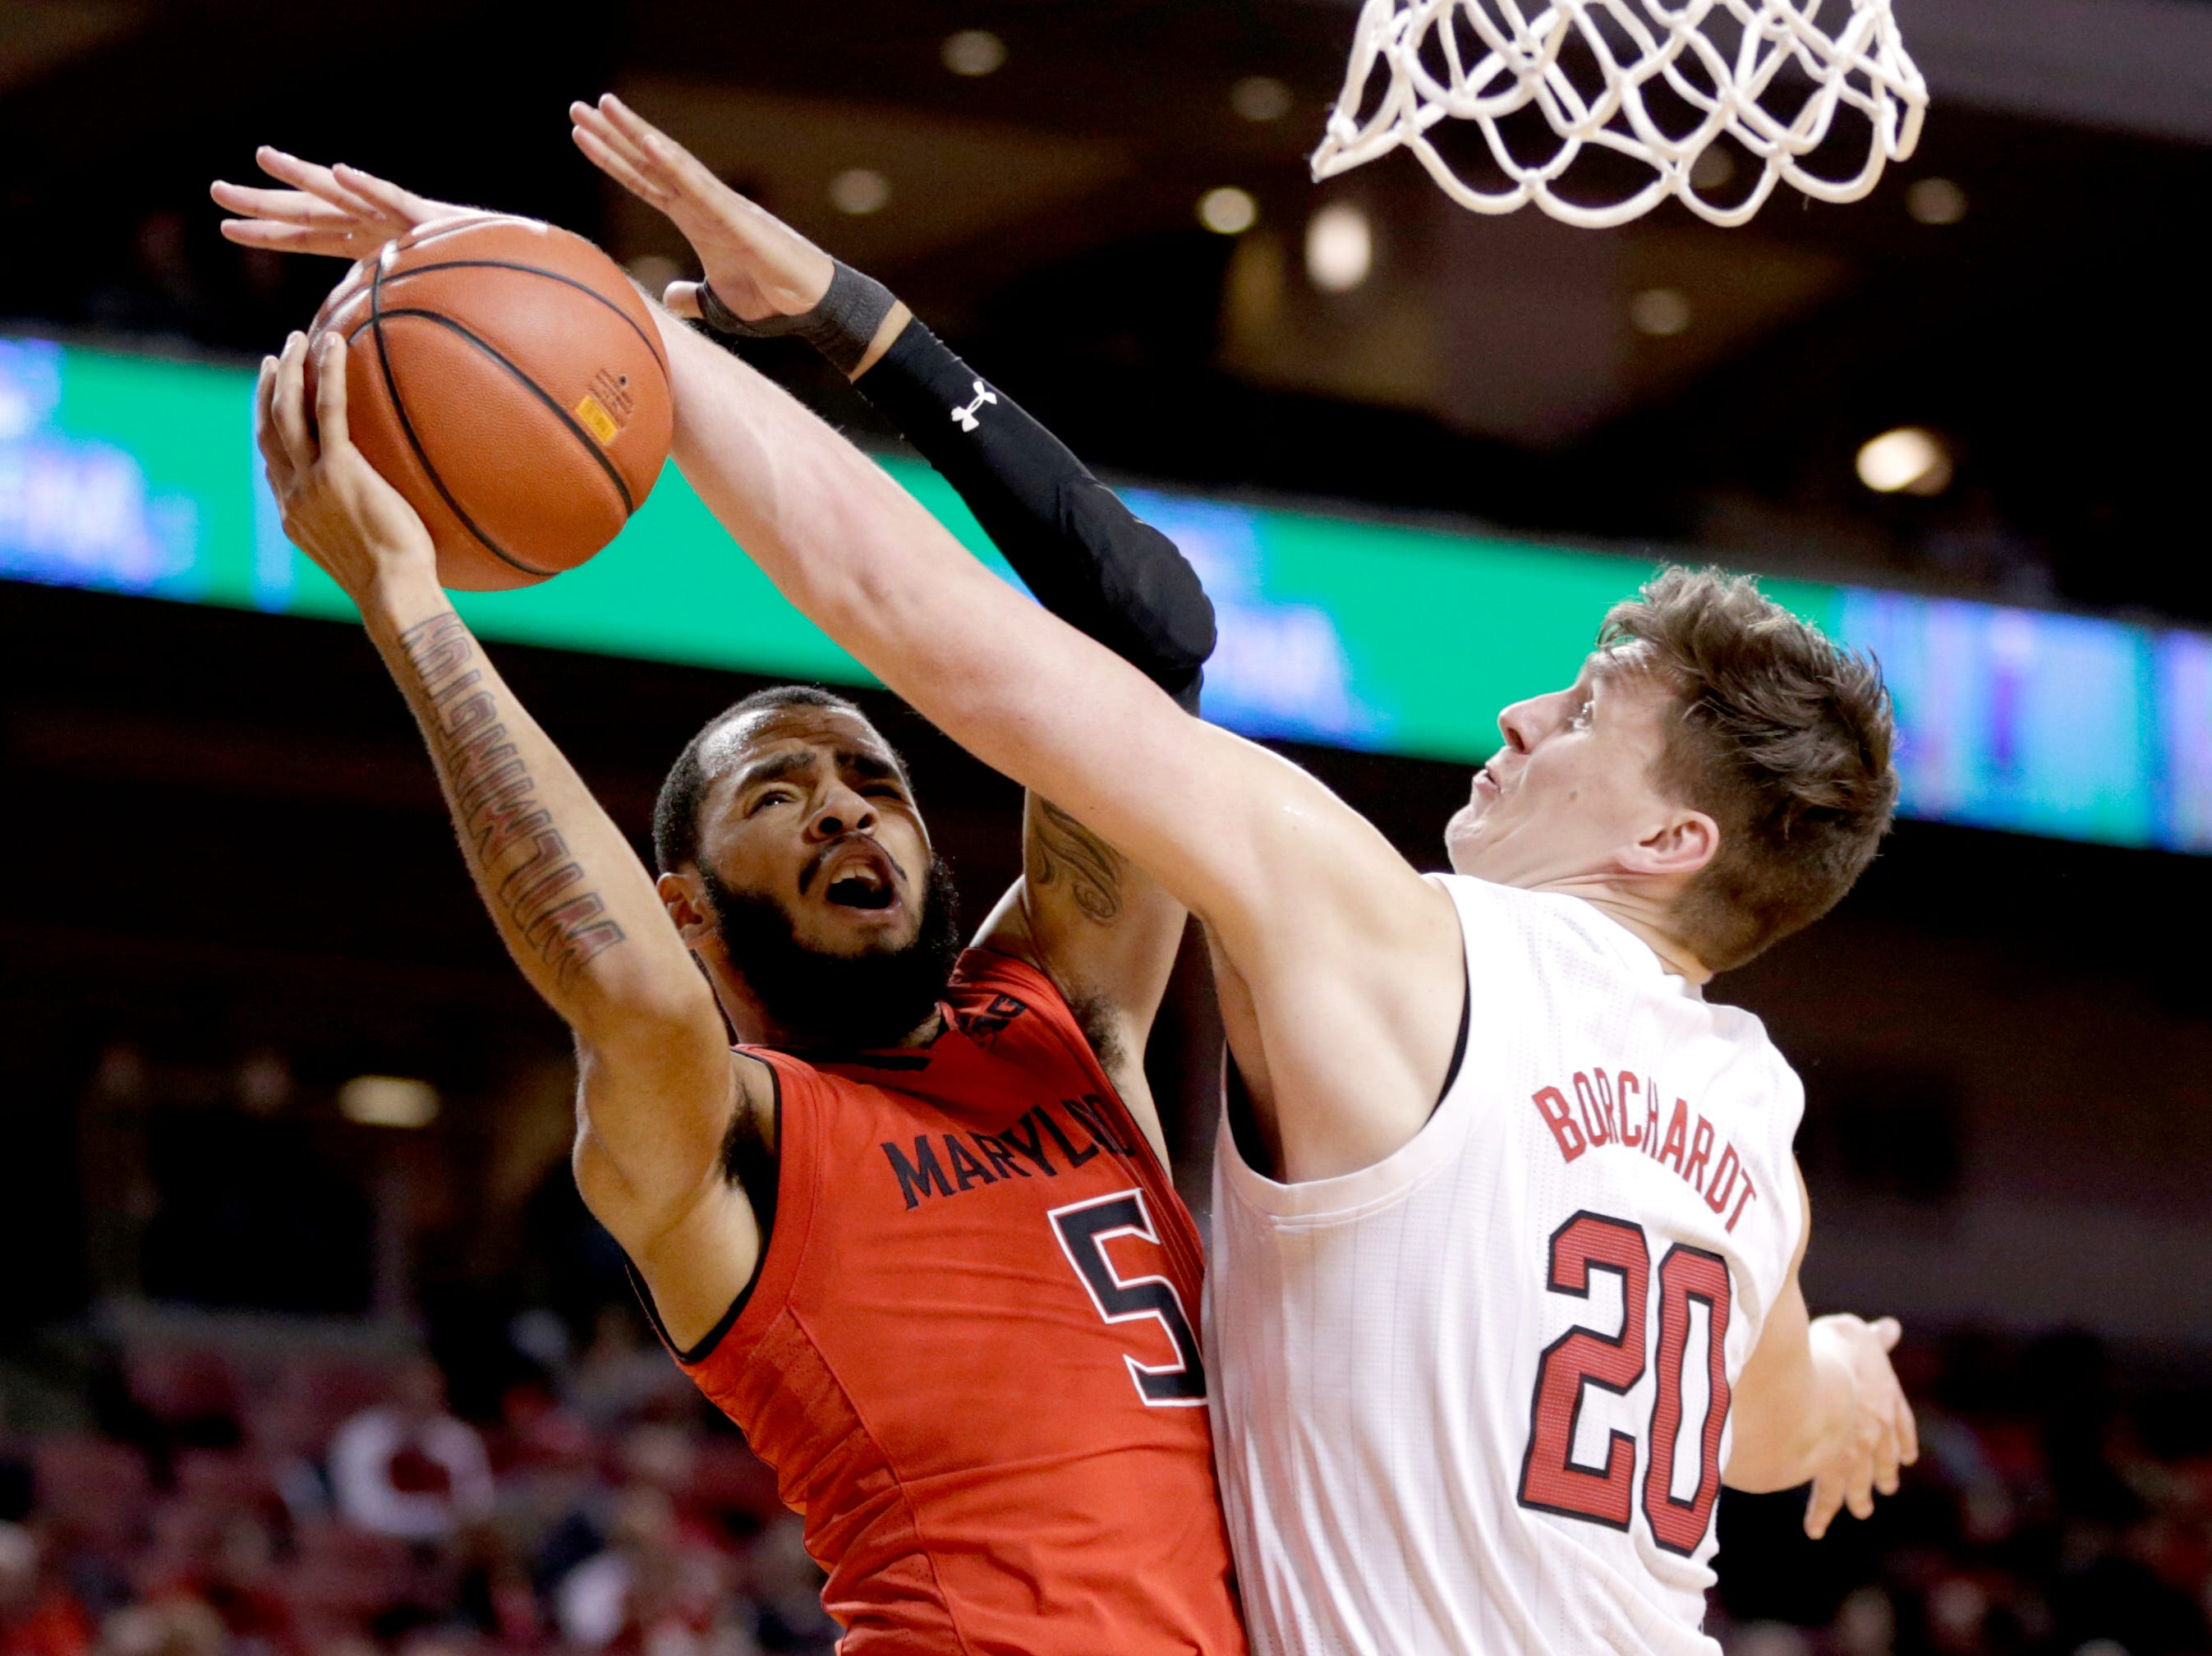 Nebraska's Tanner Borchardt (20) commits a foul while blocking a layup by Maryland's Eric Ayala (5) during the second half of an NCAA college basketball game in Lincoln, Neb., Wednesday, Feb. 6, 2019. Maryland won 60-45. (AP Photo/Nati Harnik)